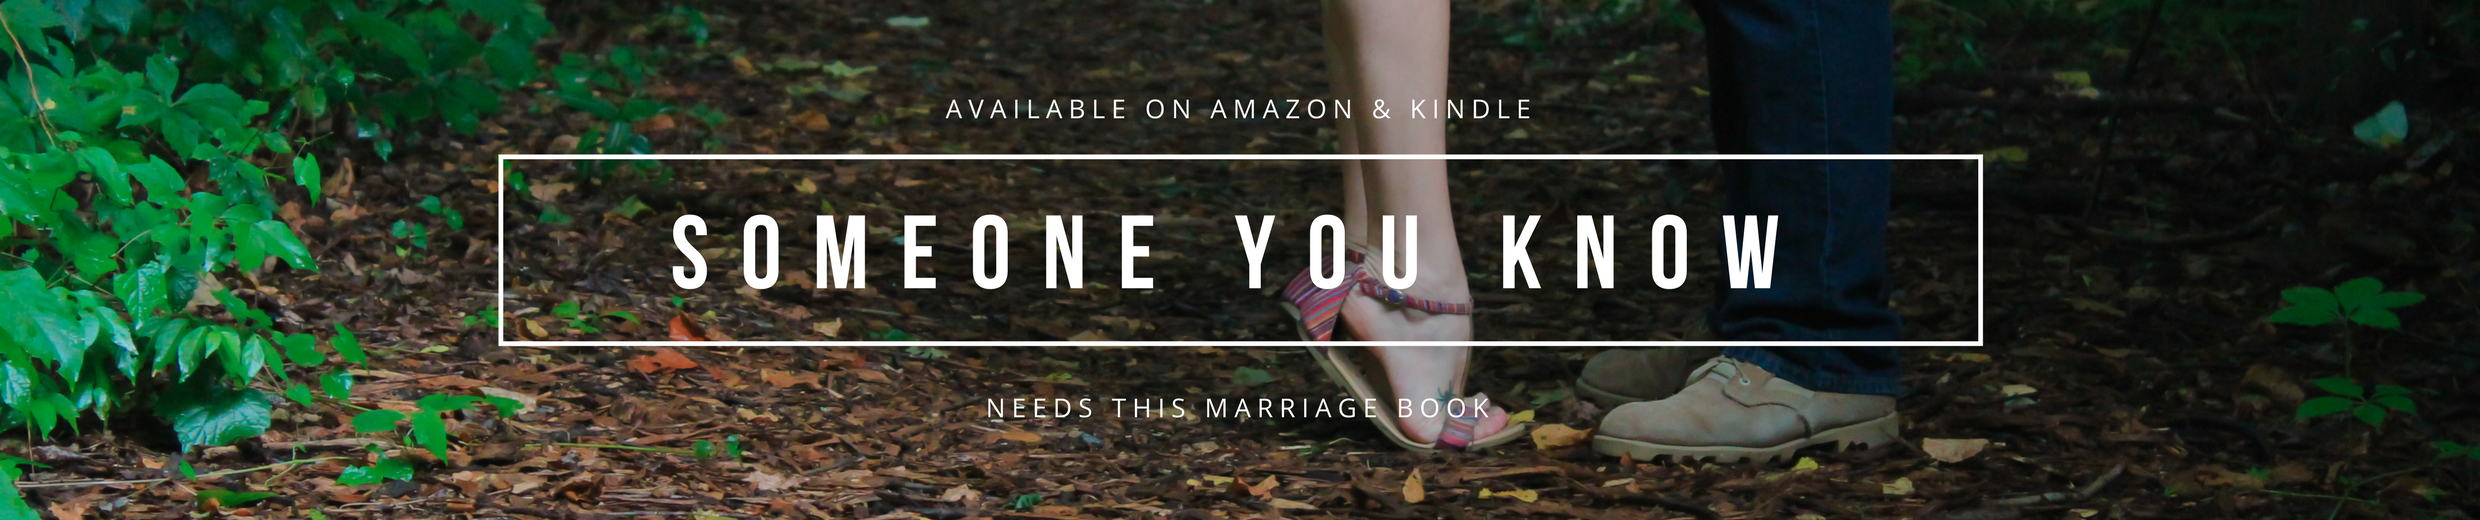 Someone you know needs this marriage book.